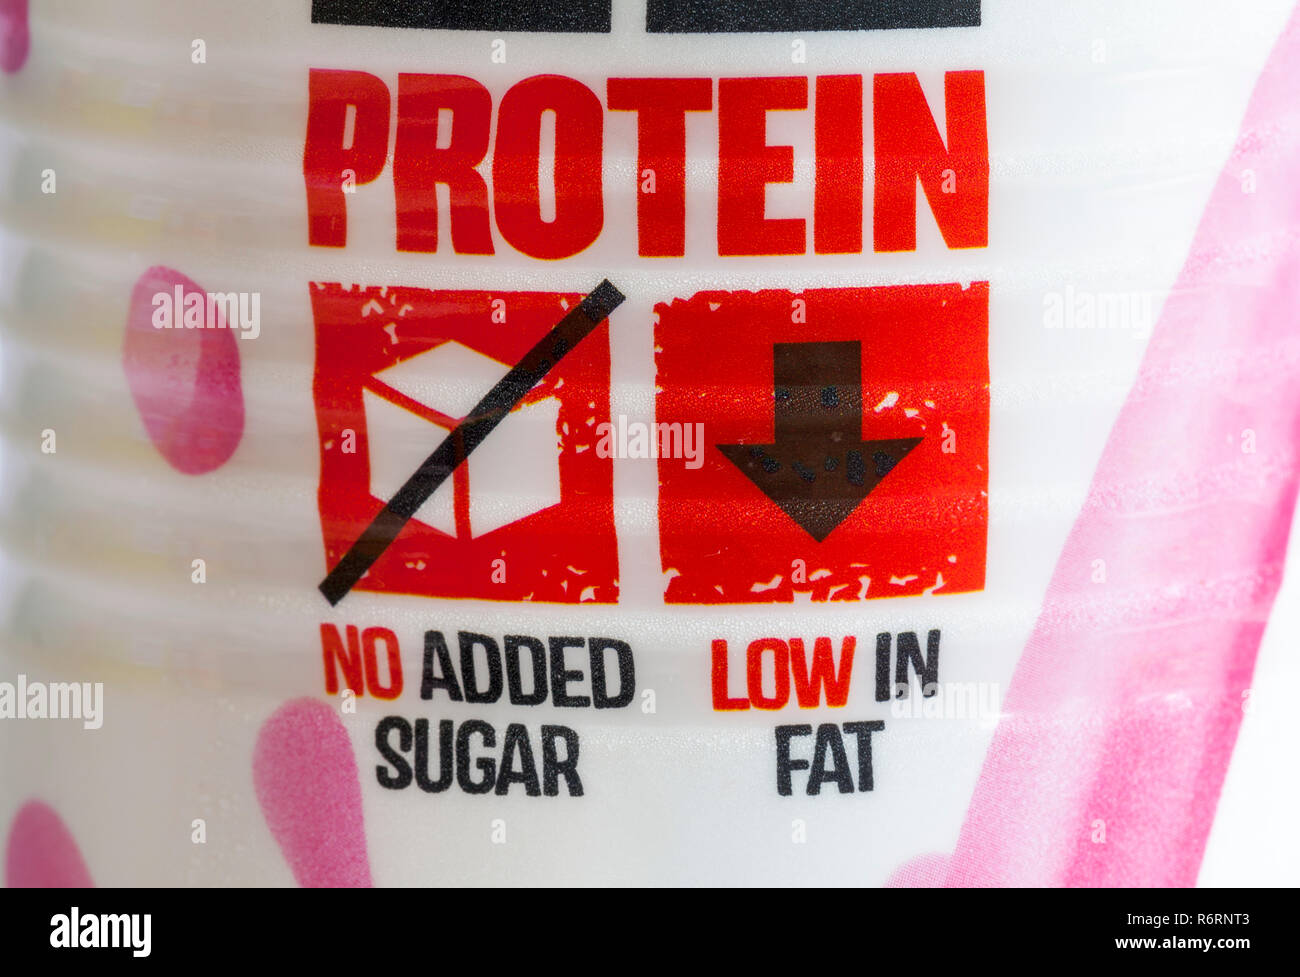 Protein, no added sugar, low in fat - detail on bottle of uFIT deliciously protein packed Strawberry flavour high protein milkshake - Stock Image